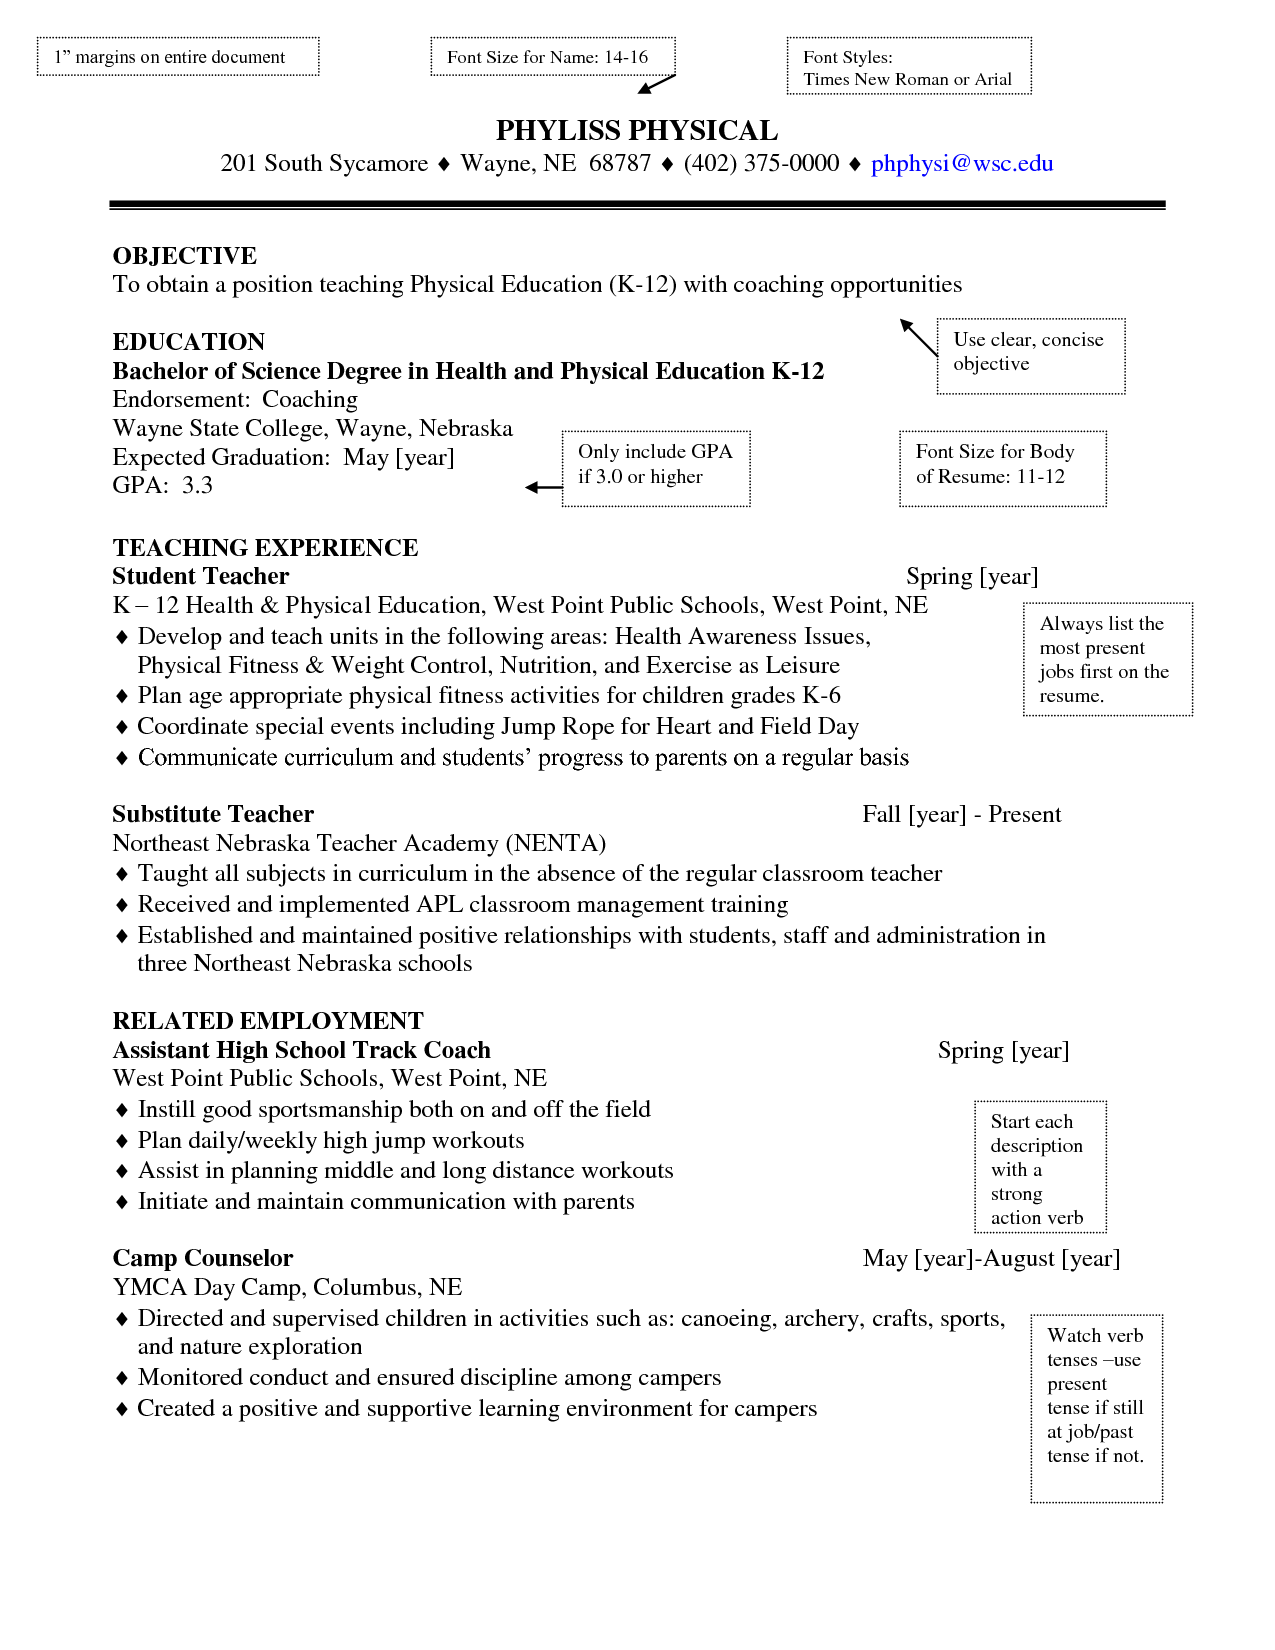 samples of special education teacher resumes